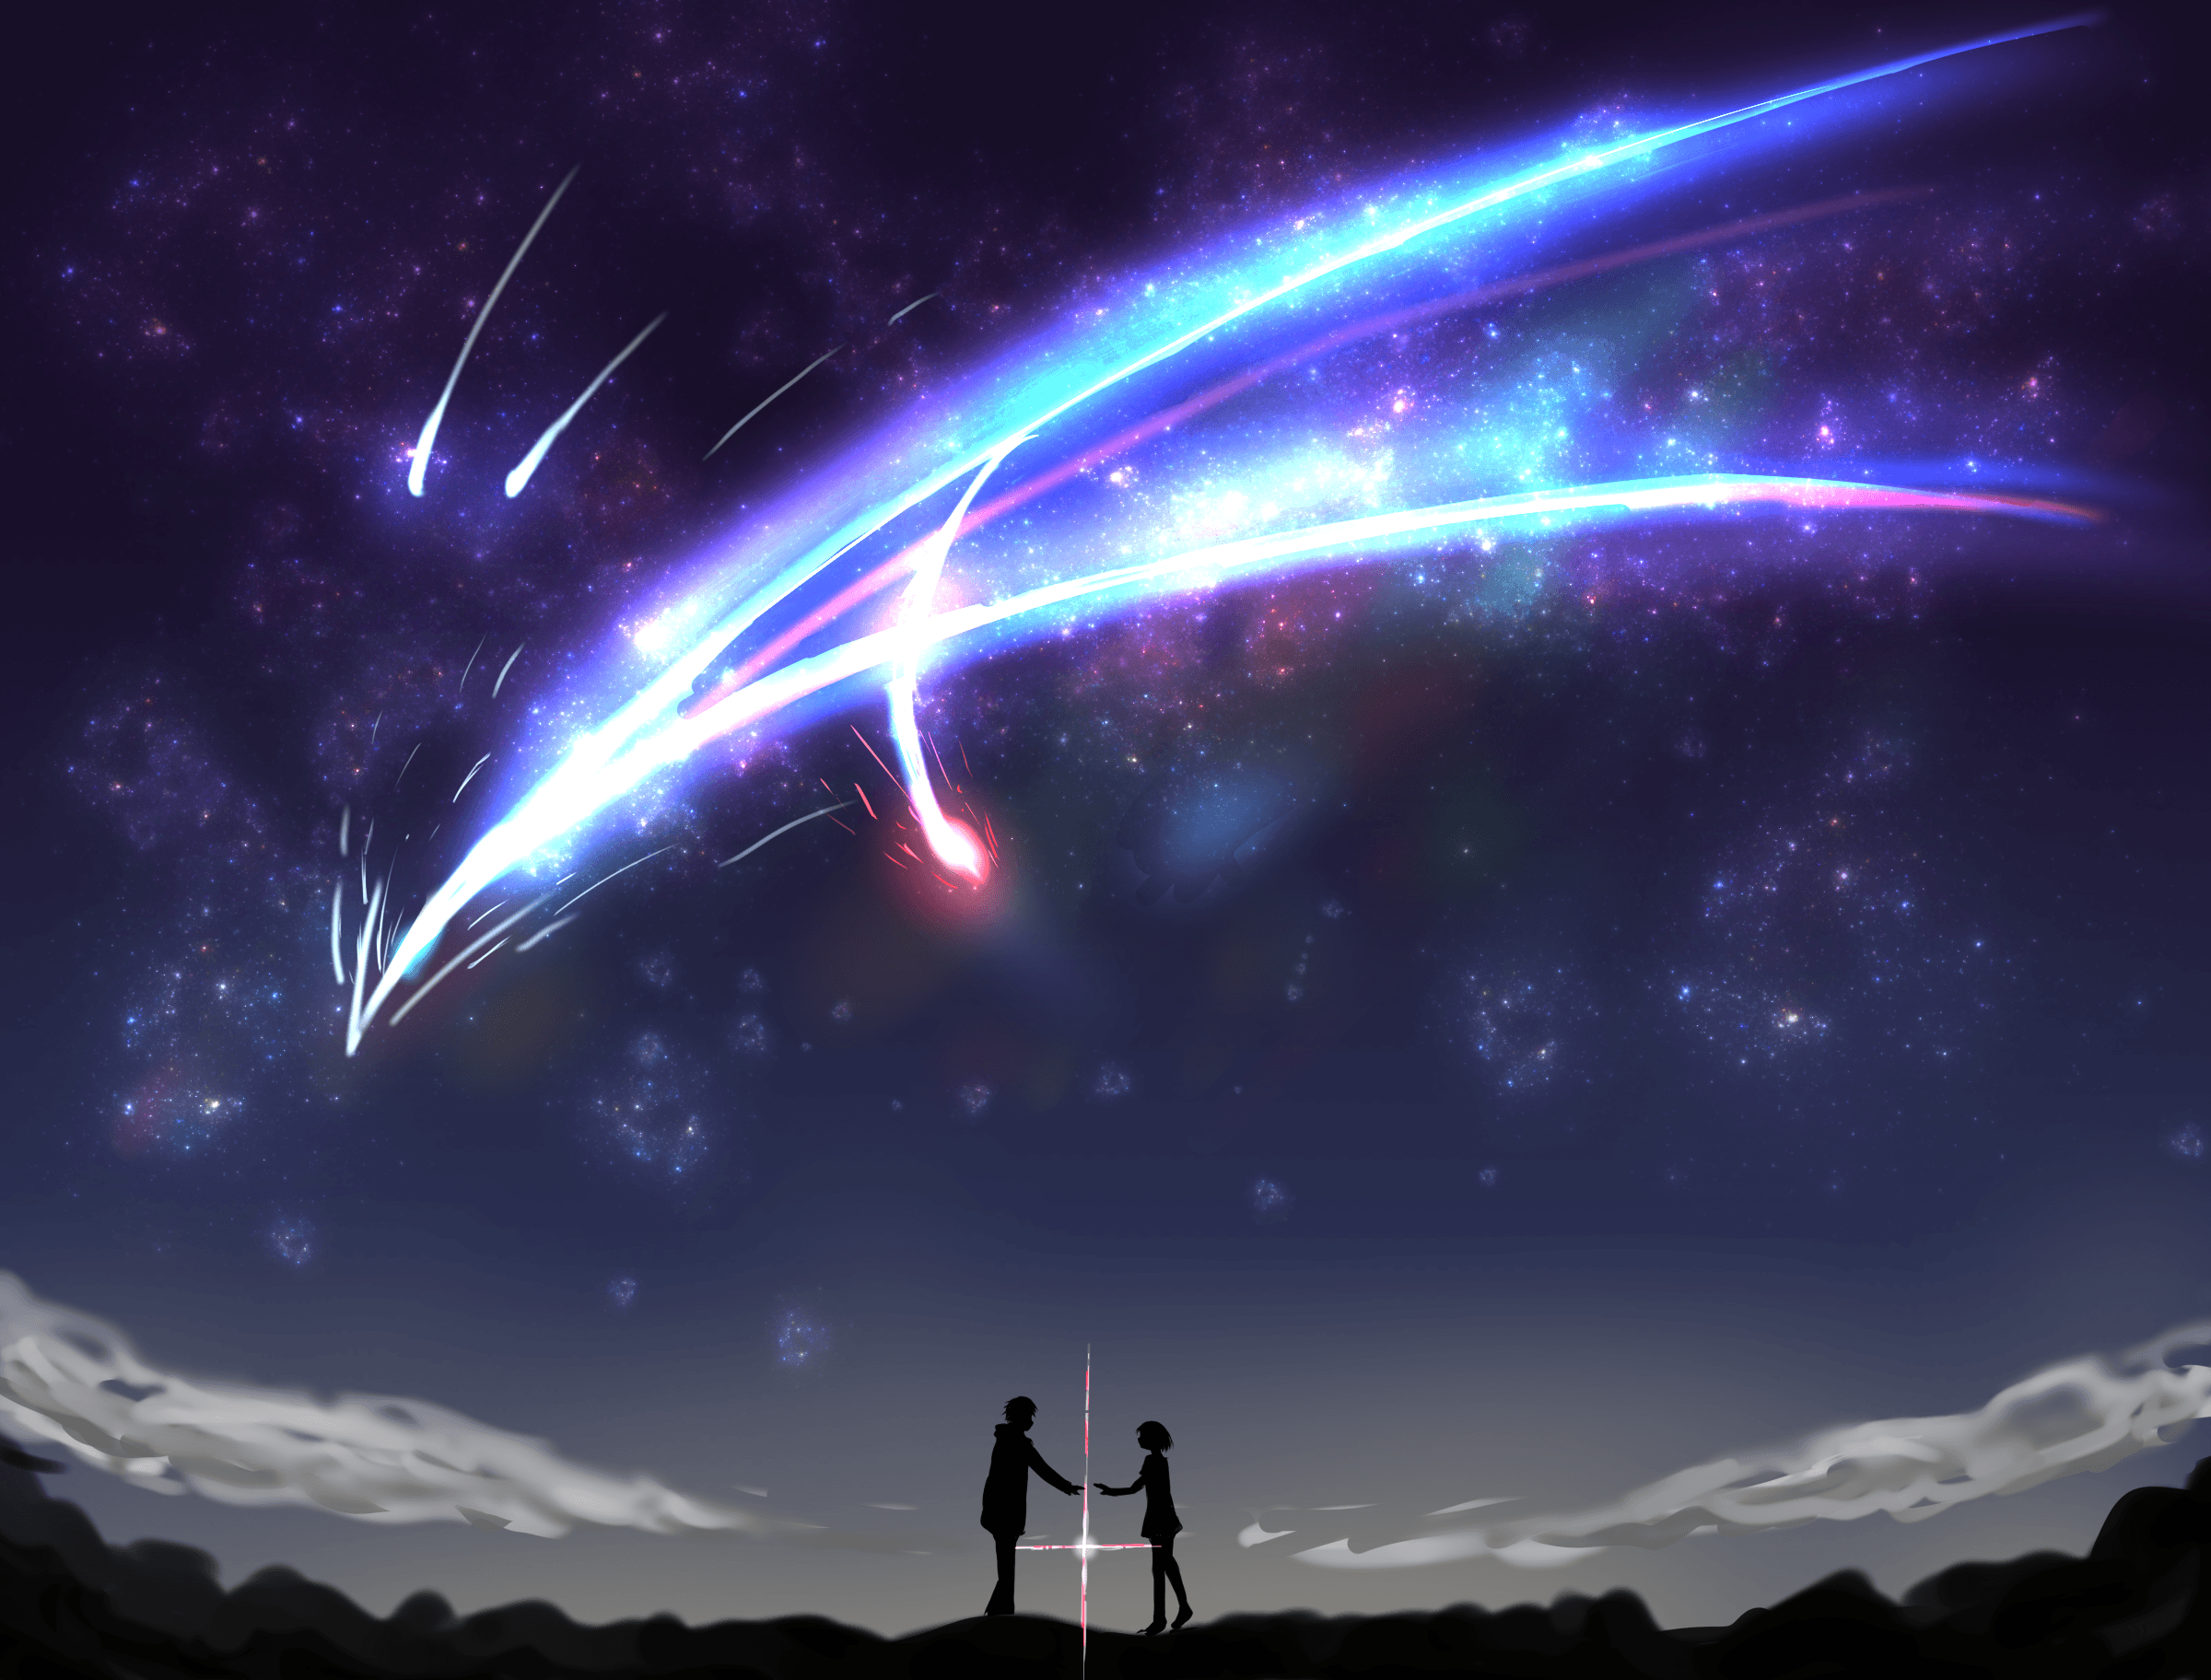 Your Name Anime Landscape Wallpapers Top Free Your Name Anime Landscape Backgrounds Wallpaperaccess